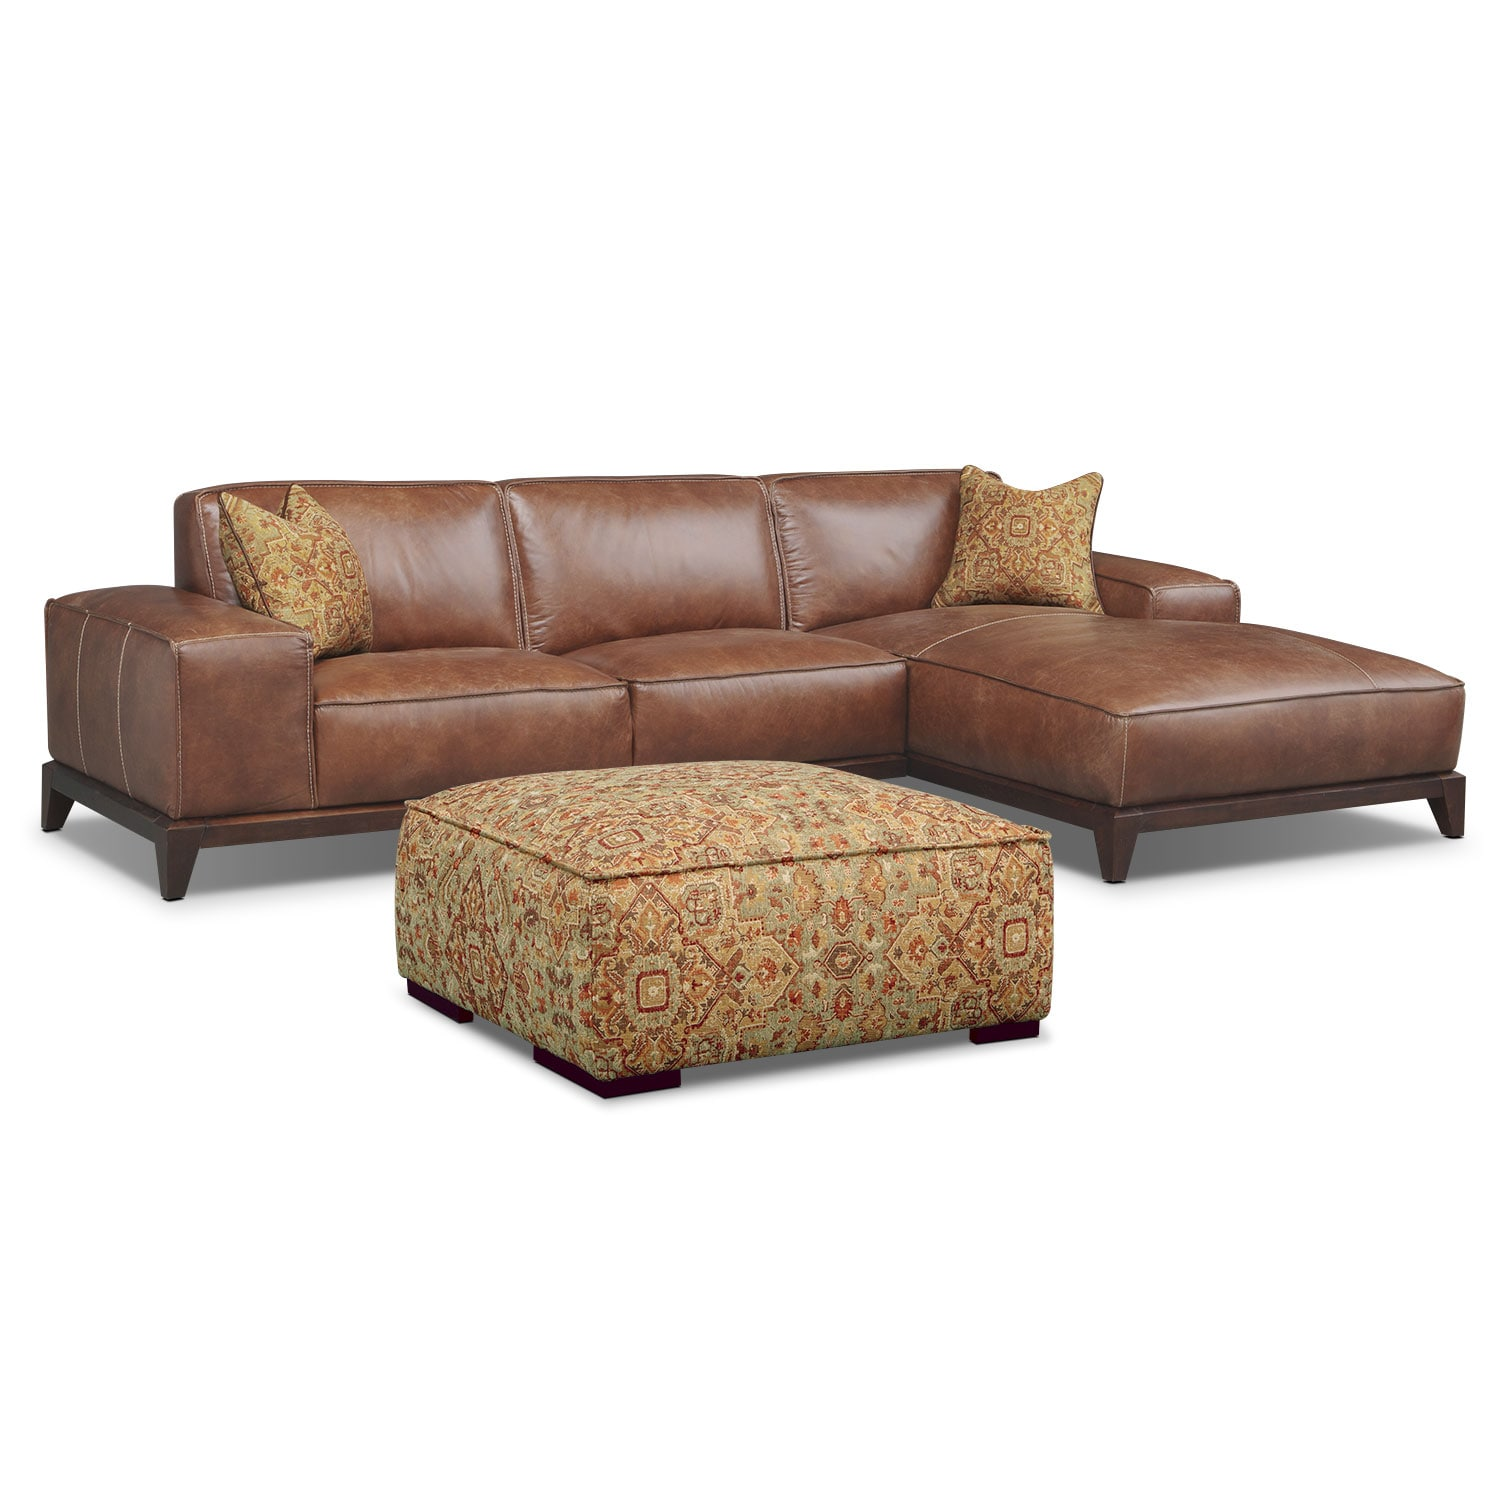 Living Room Furniture - Harrison 2-Piece Right-Facing Sectional with Ottoman - Tobacco